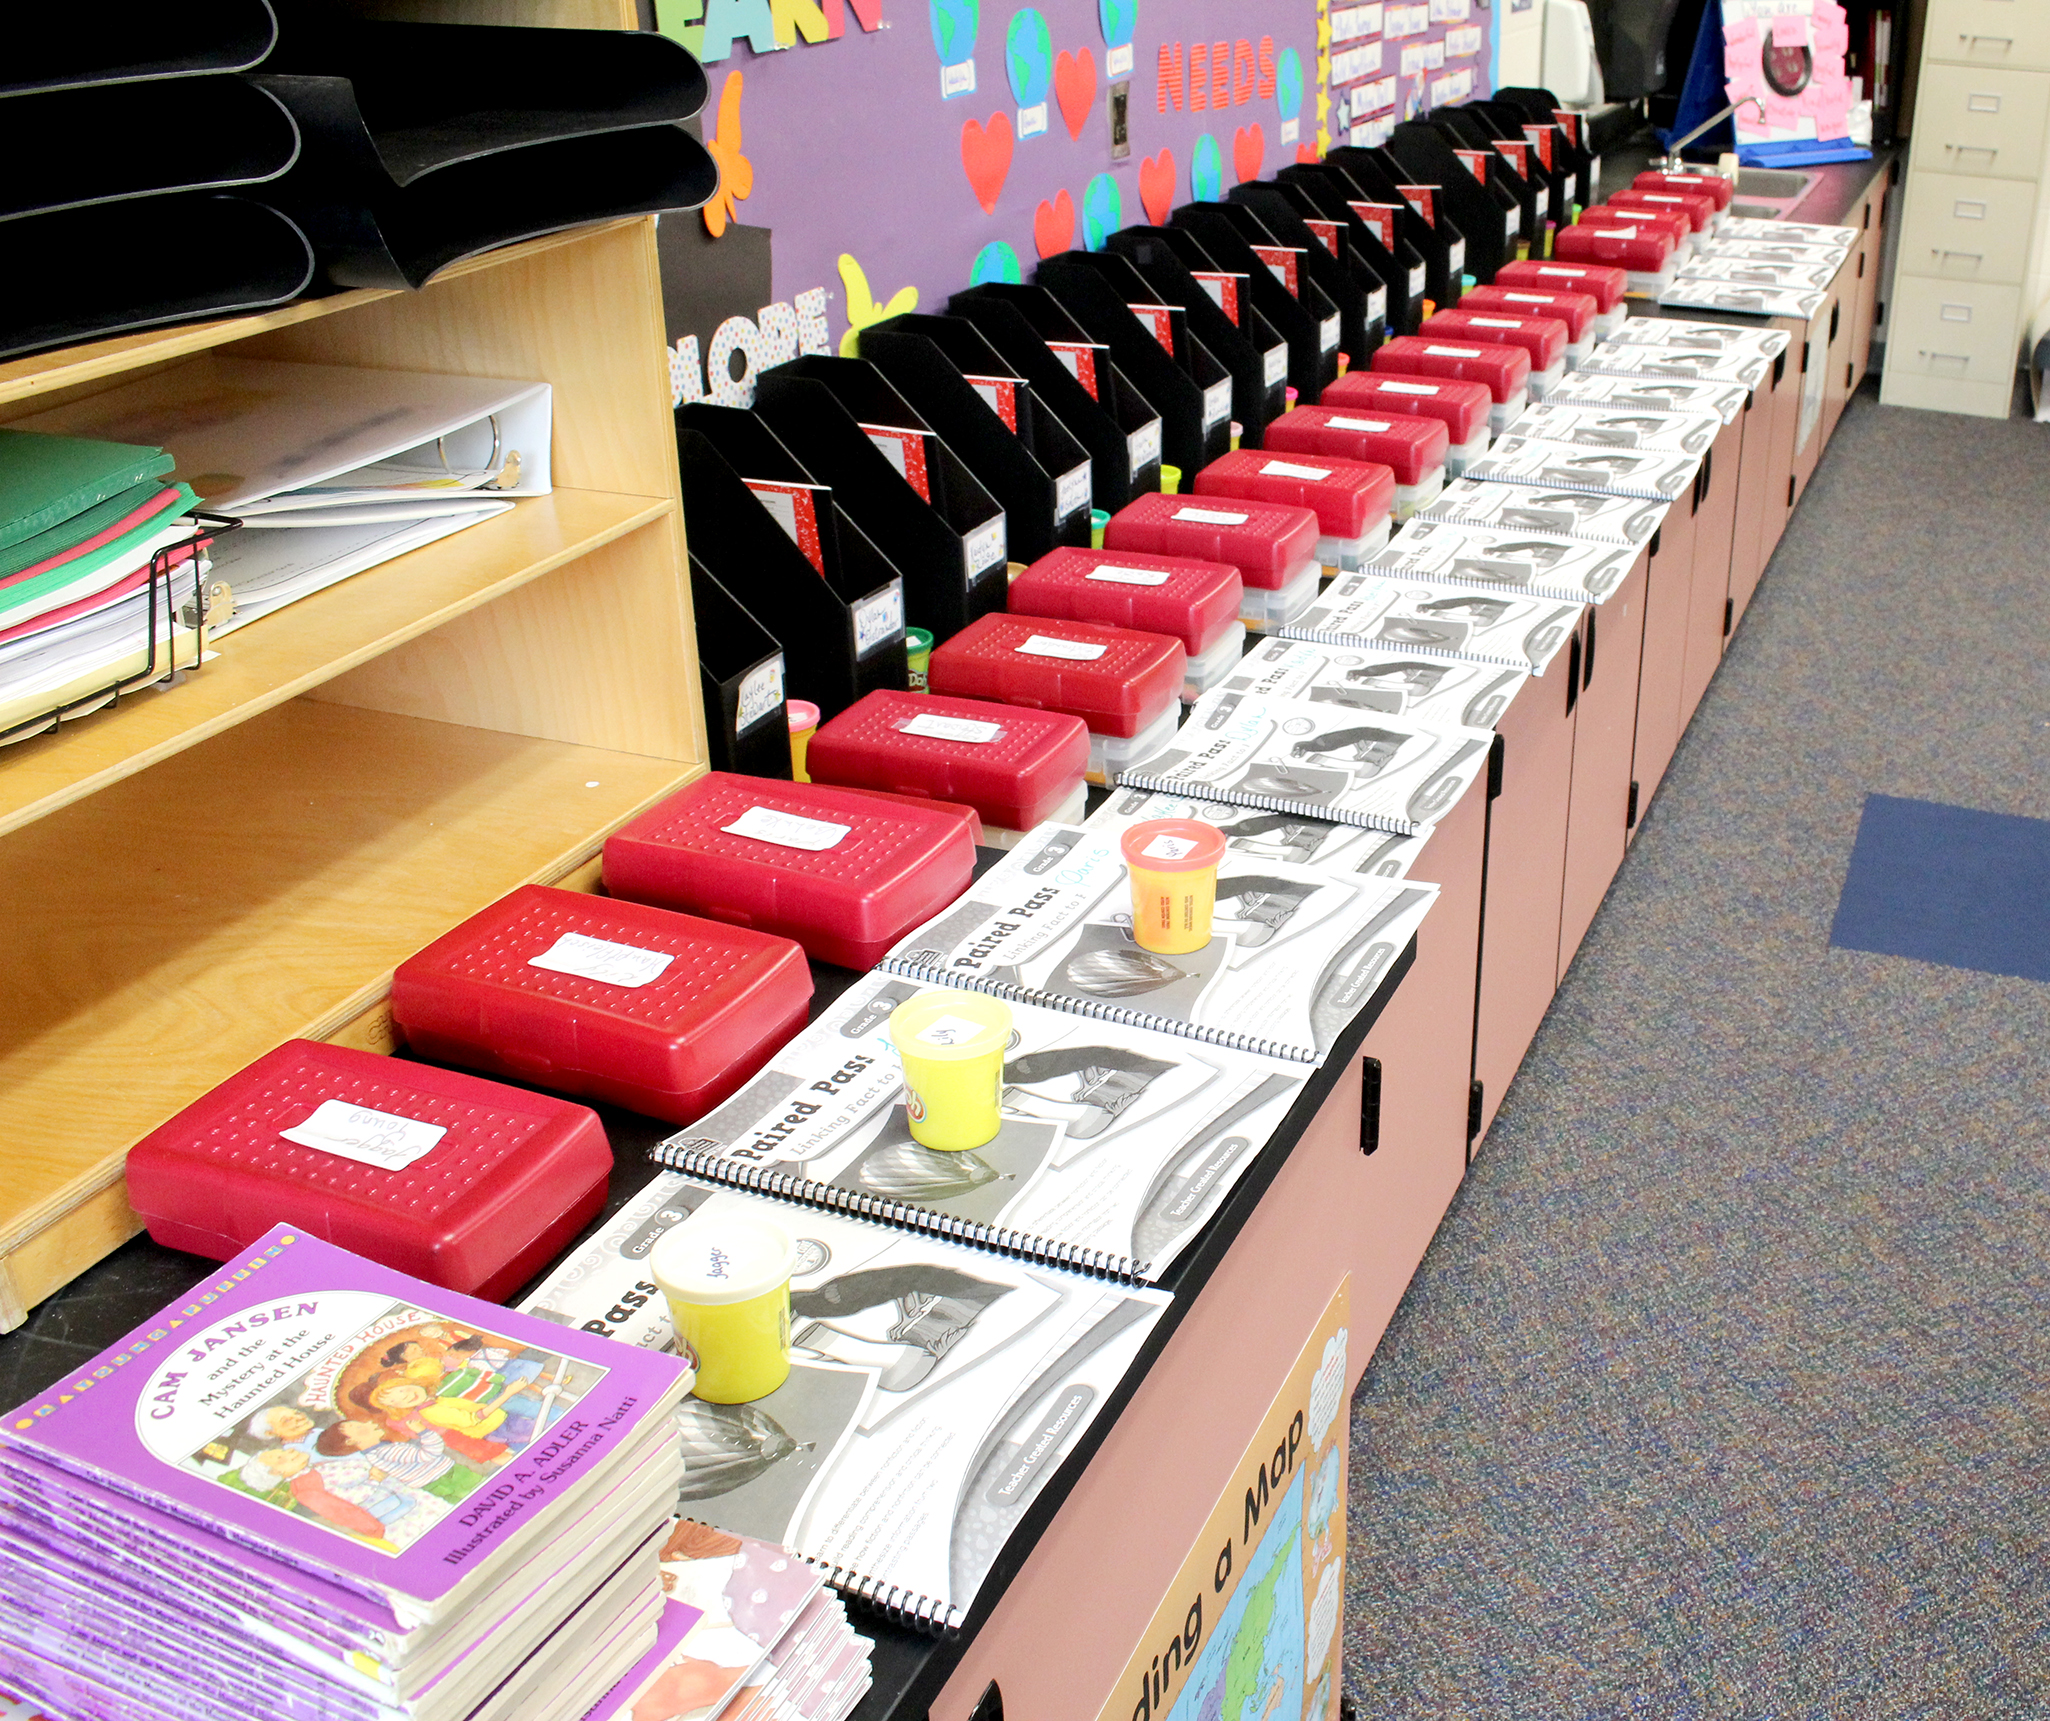 Student materials in classroom (9/2020)